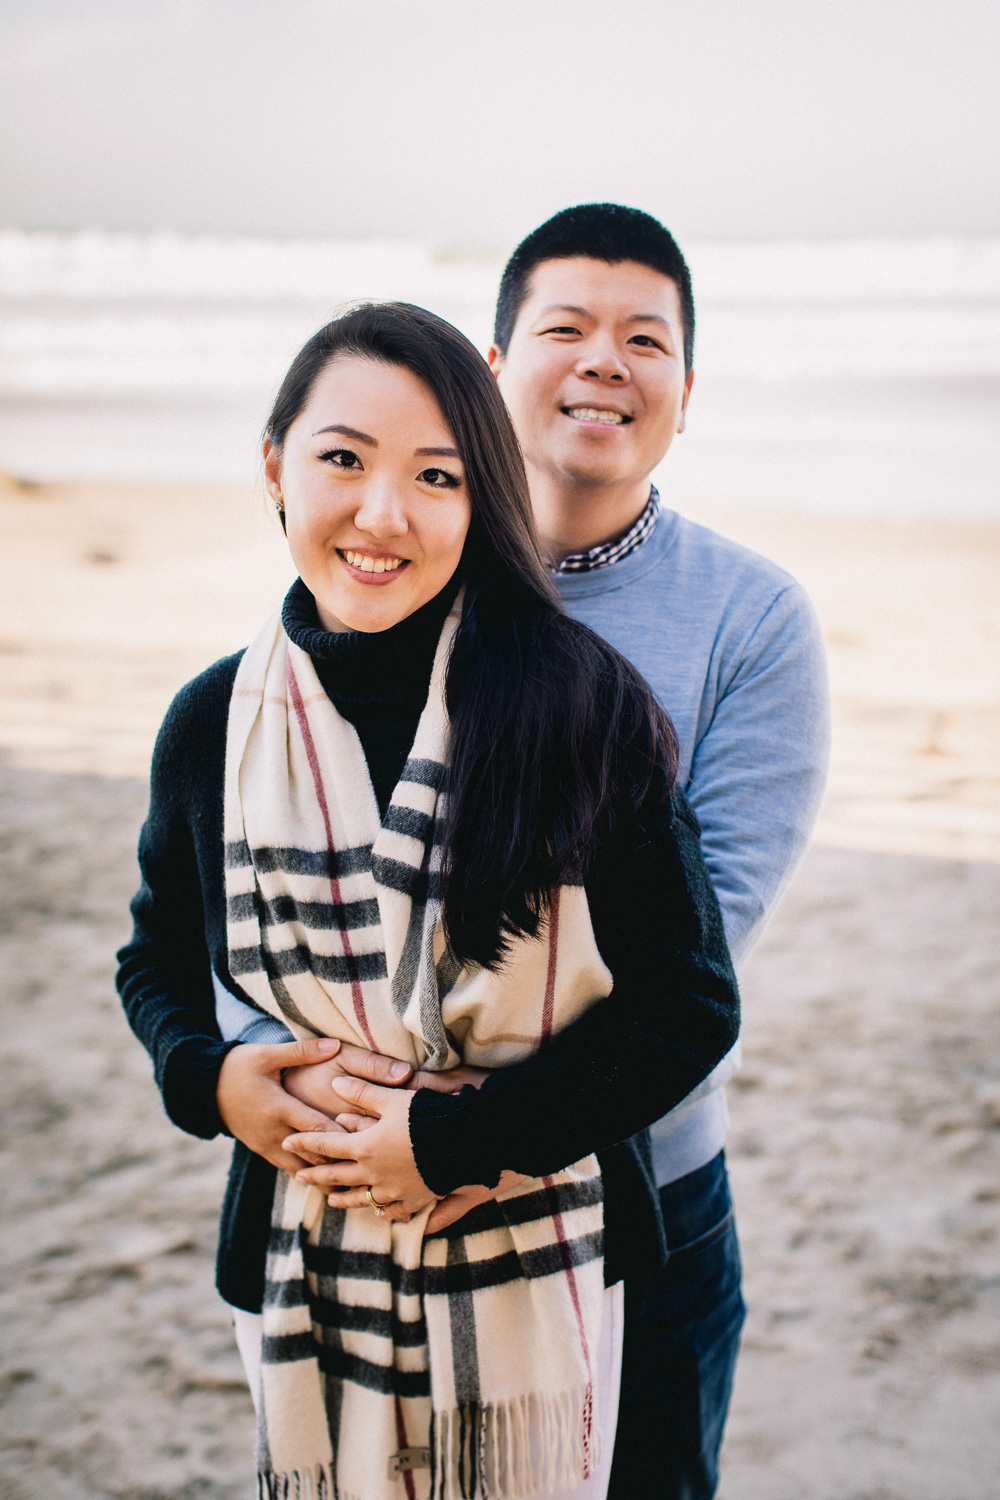 Pismo-Beach-Couples-Photography-Session-With-Puppy-110.jpg